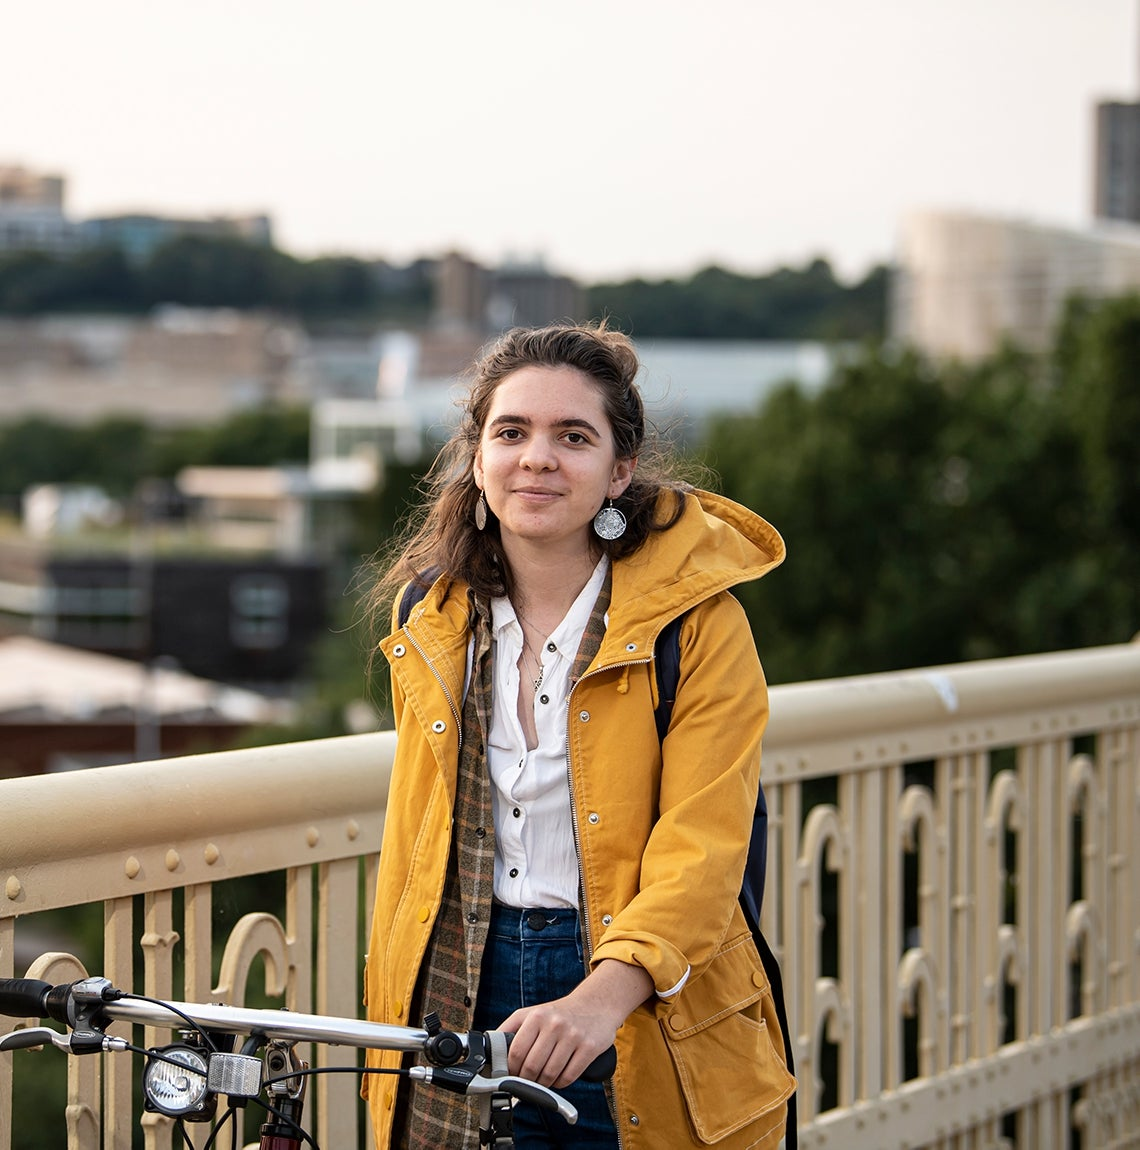 Avocet Greenwell, wearing a yellow coat, plaid shirt, a backpack, dangle earrings and jeans, stands on Schenley Bridge with her bike